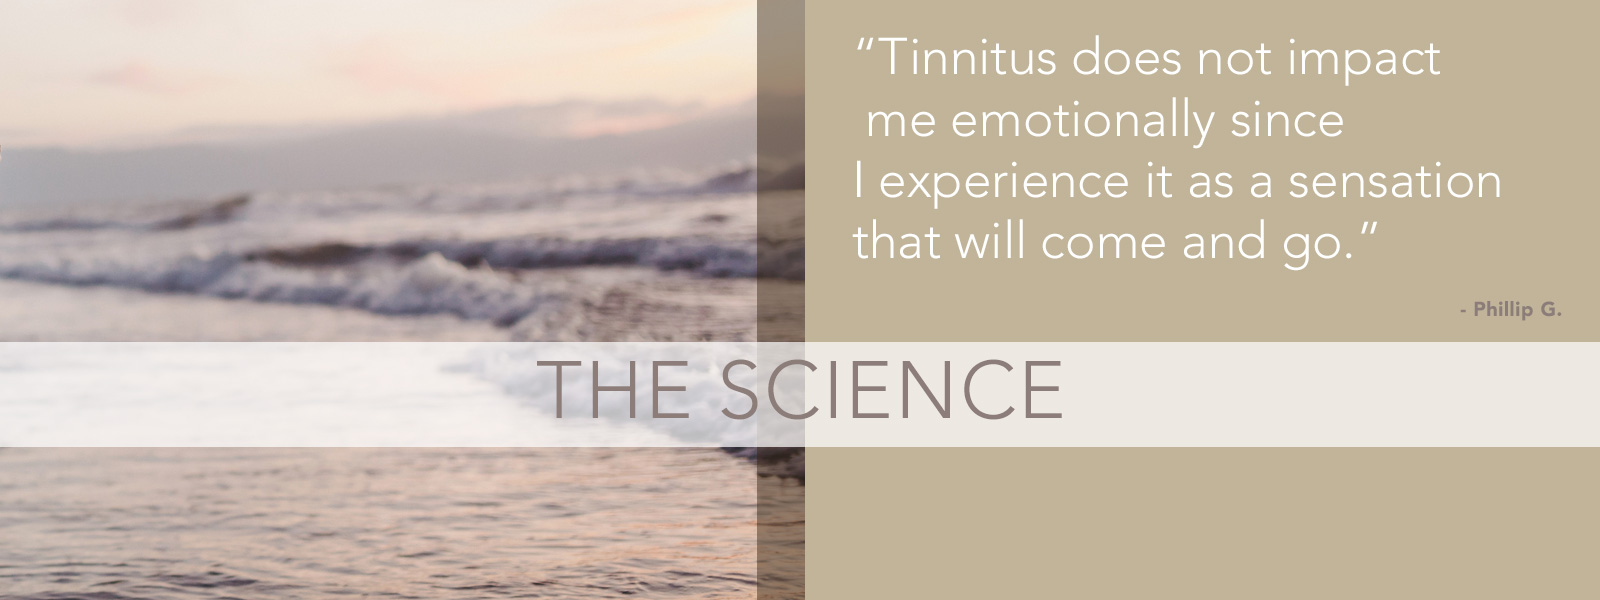 Mindfulness-Based Tinnitus Stress Reduction